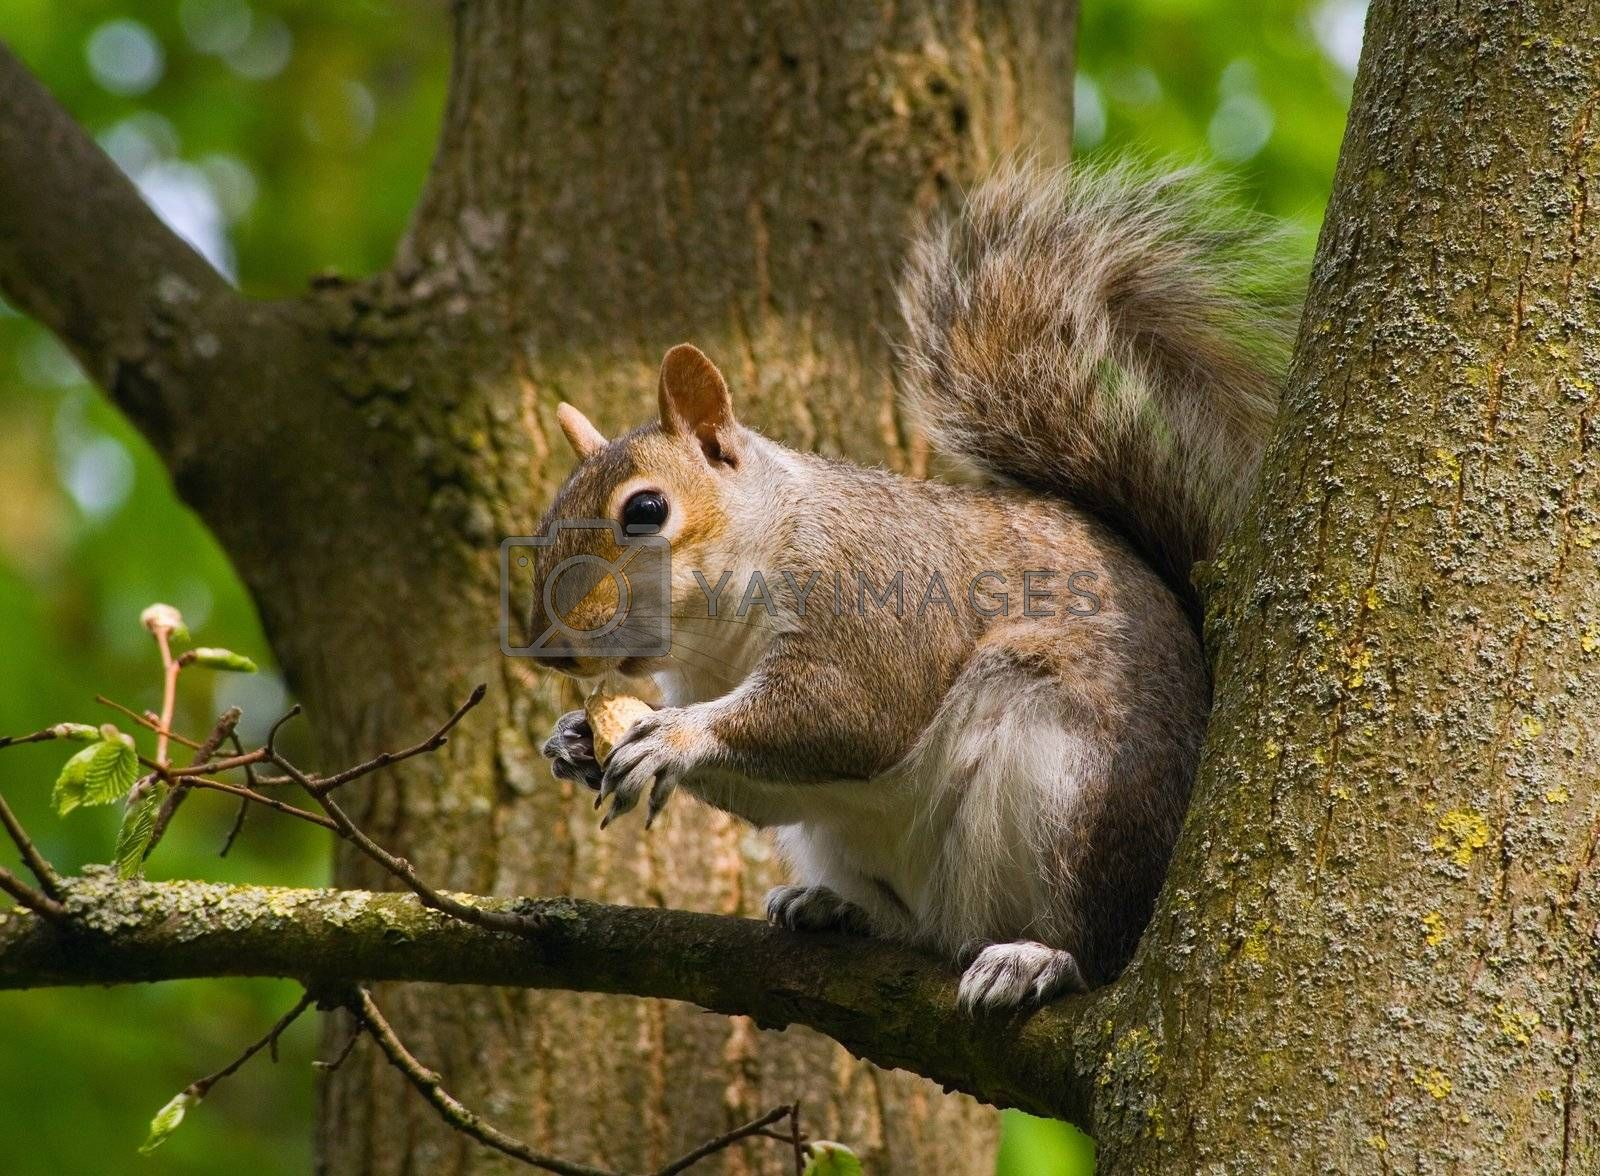 a squirrel sitting in a tree eating a monkey nut